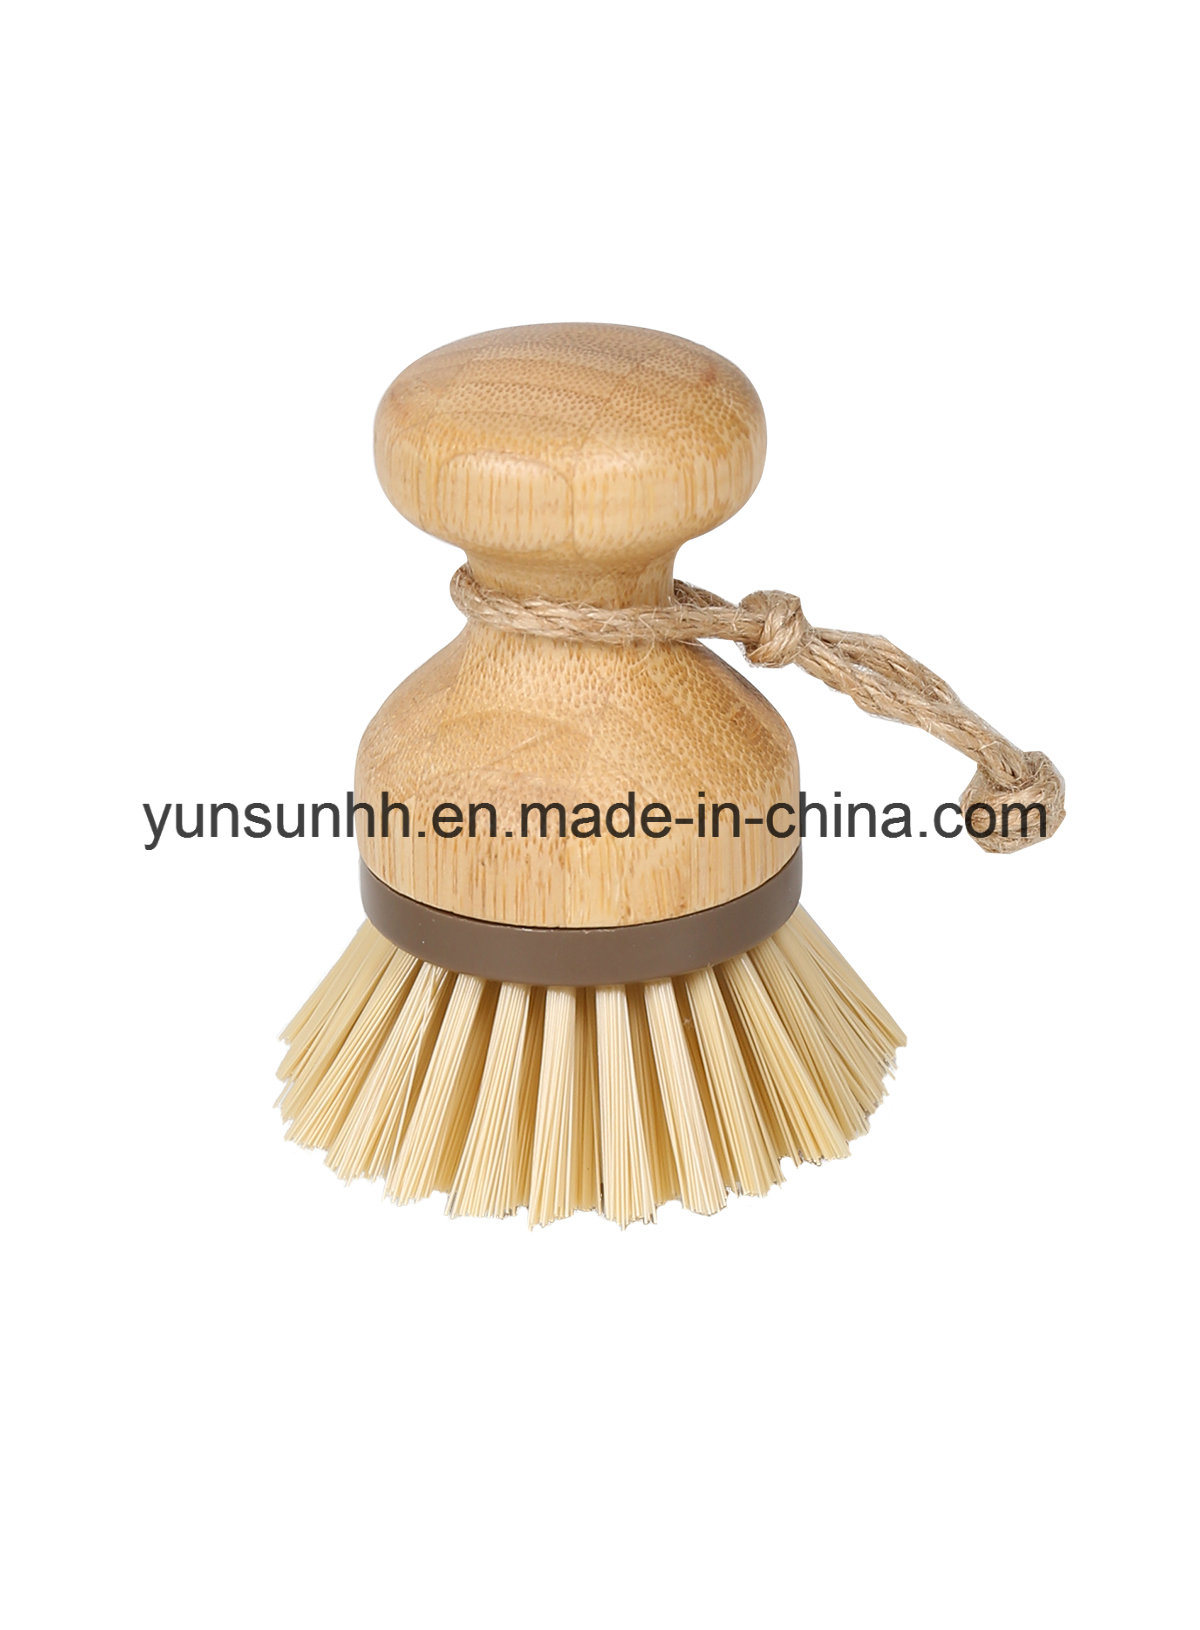 Seal Brush/ Cleaning Brush/Kitchen Cleaner